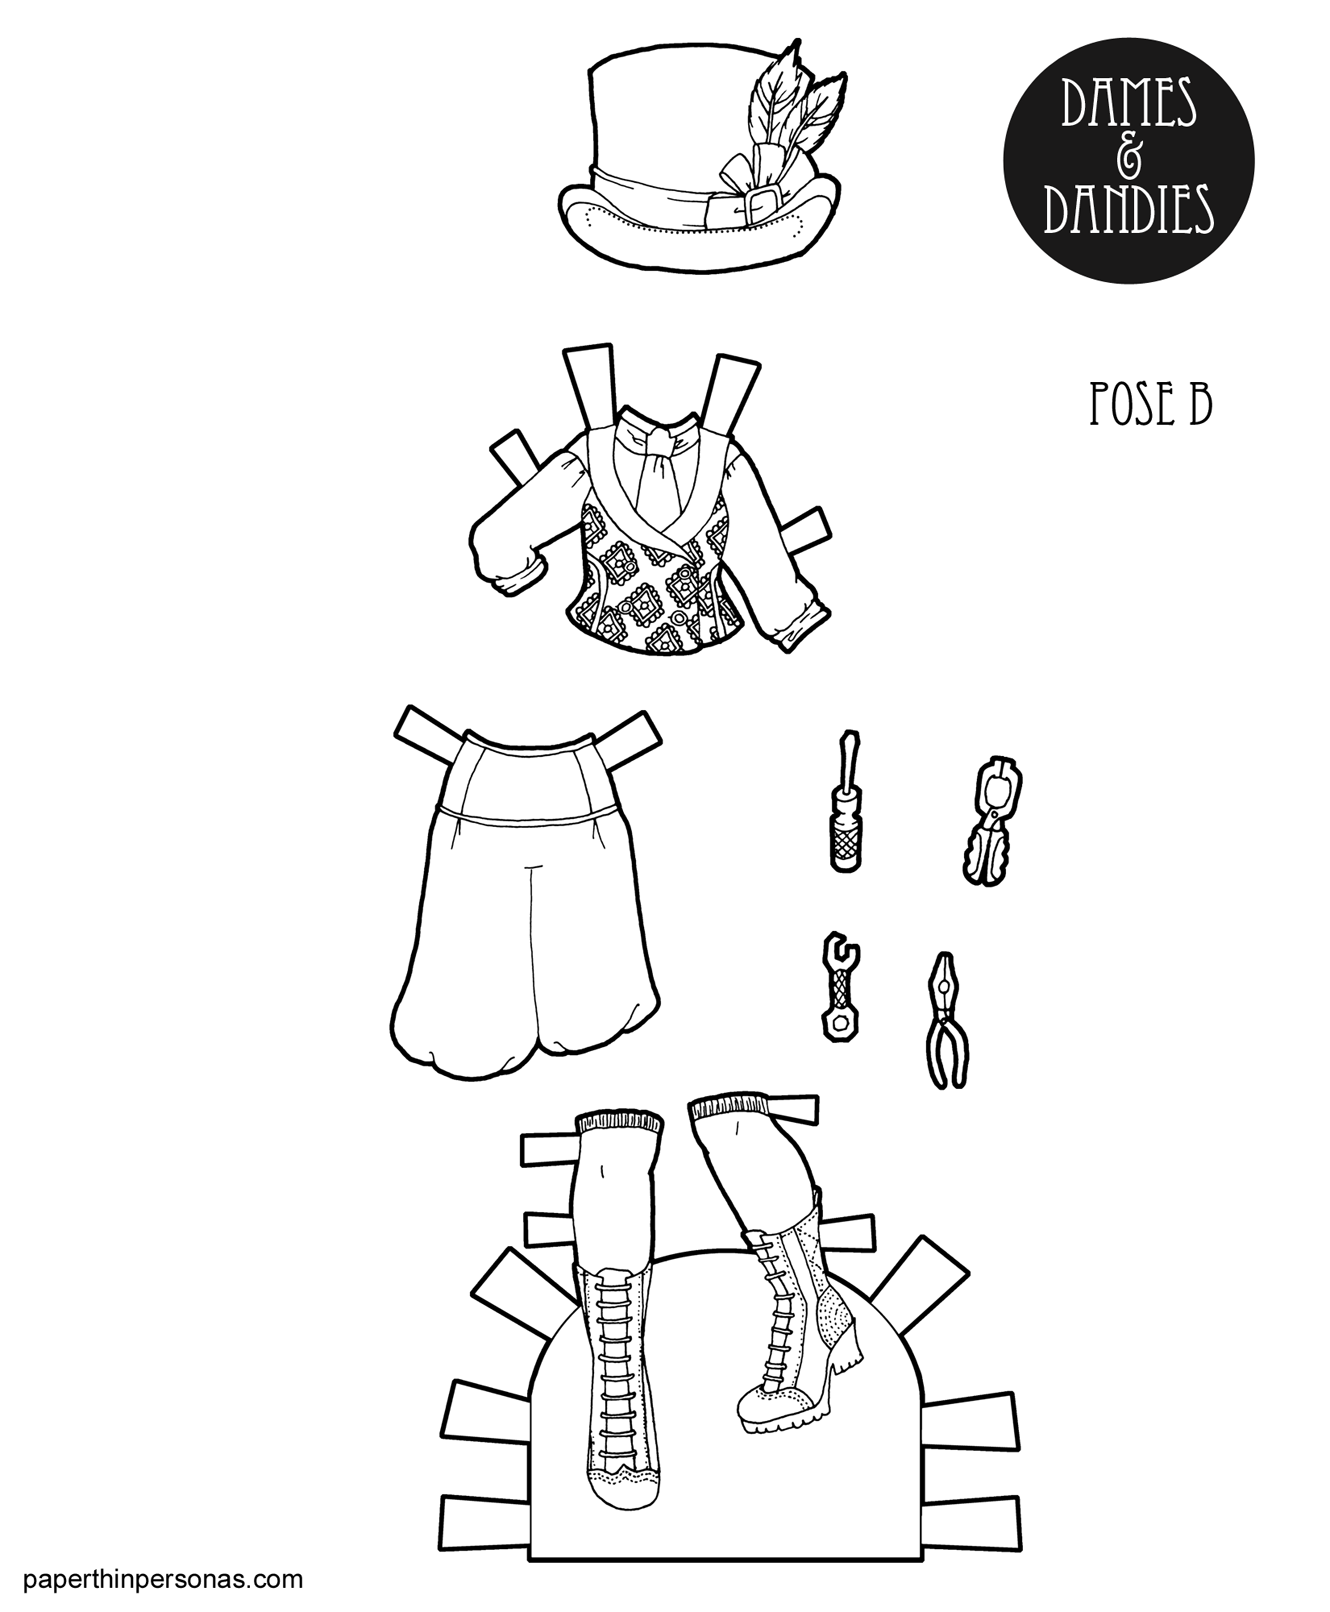 steampunk paper doll clothing coloring page from. Black Bedroom Furniture Sets. Home Design Ideas